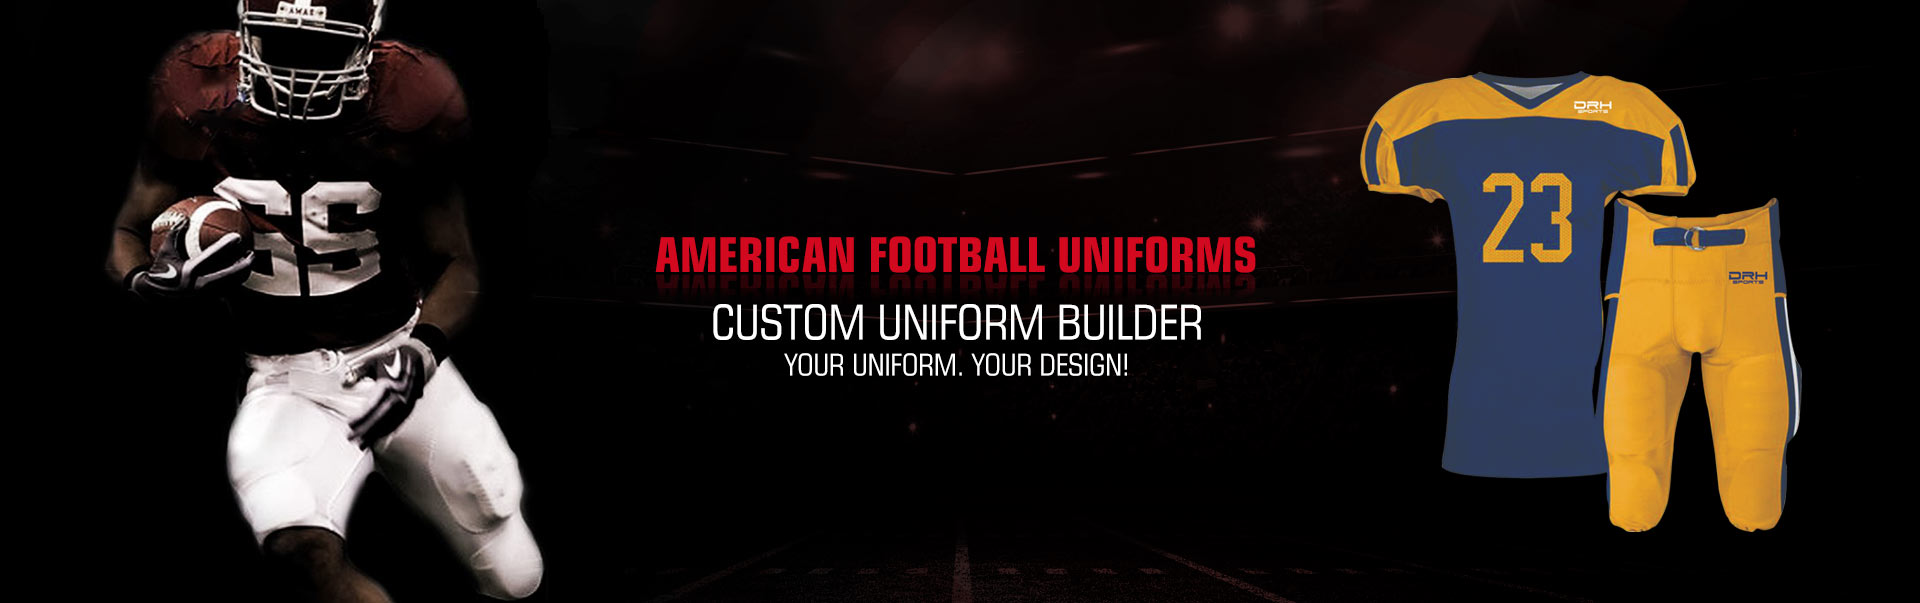 American Football Uniform Wholesaler, Suppliers in Albania